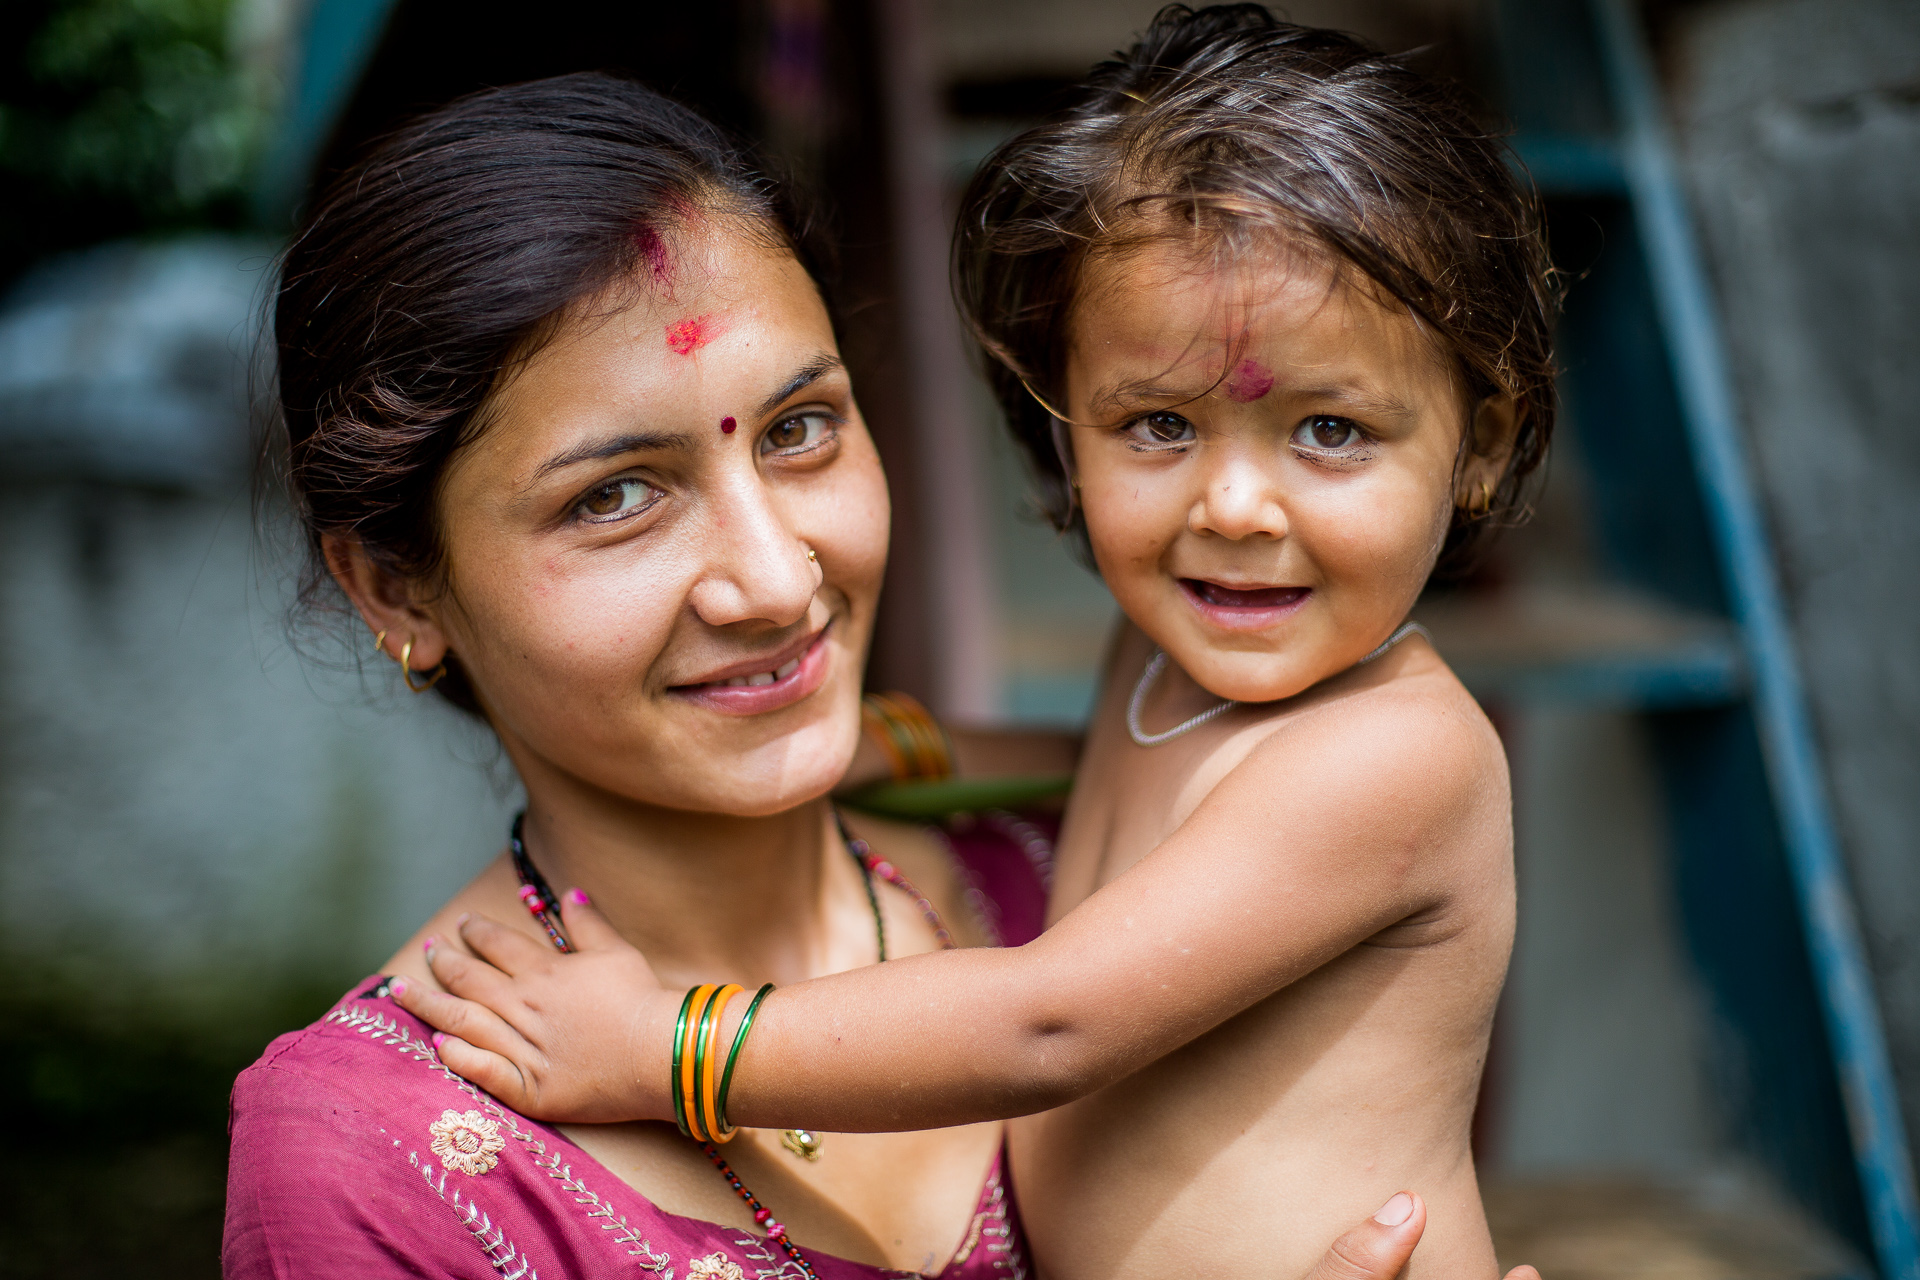 Caring mother proudly posing with her child. She was one of Rohit's neighbours when he was living in this remote mountain village.